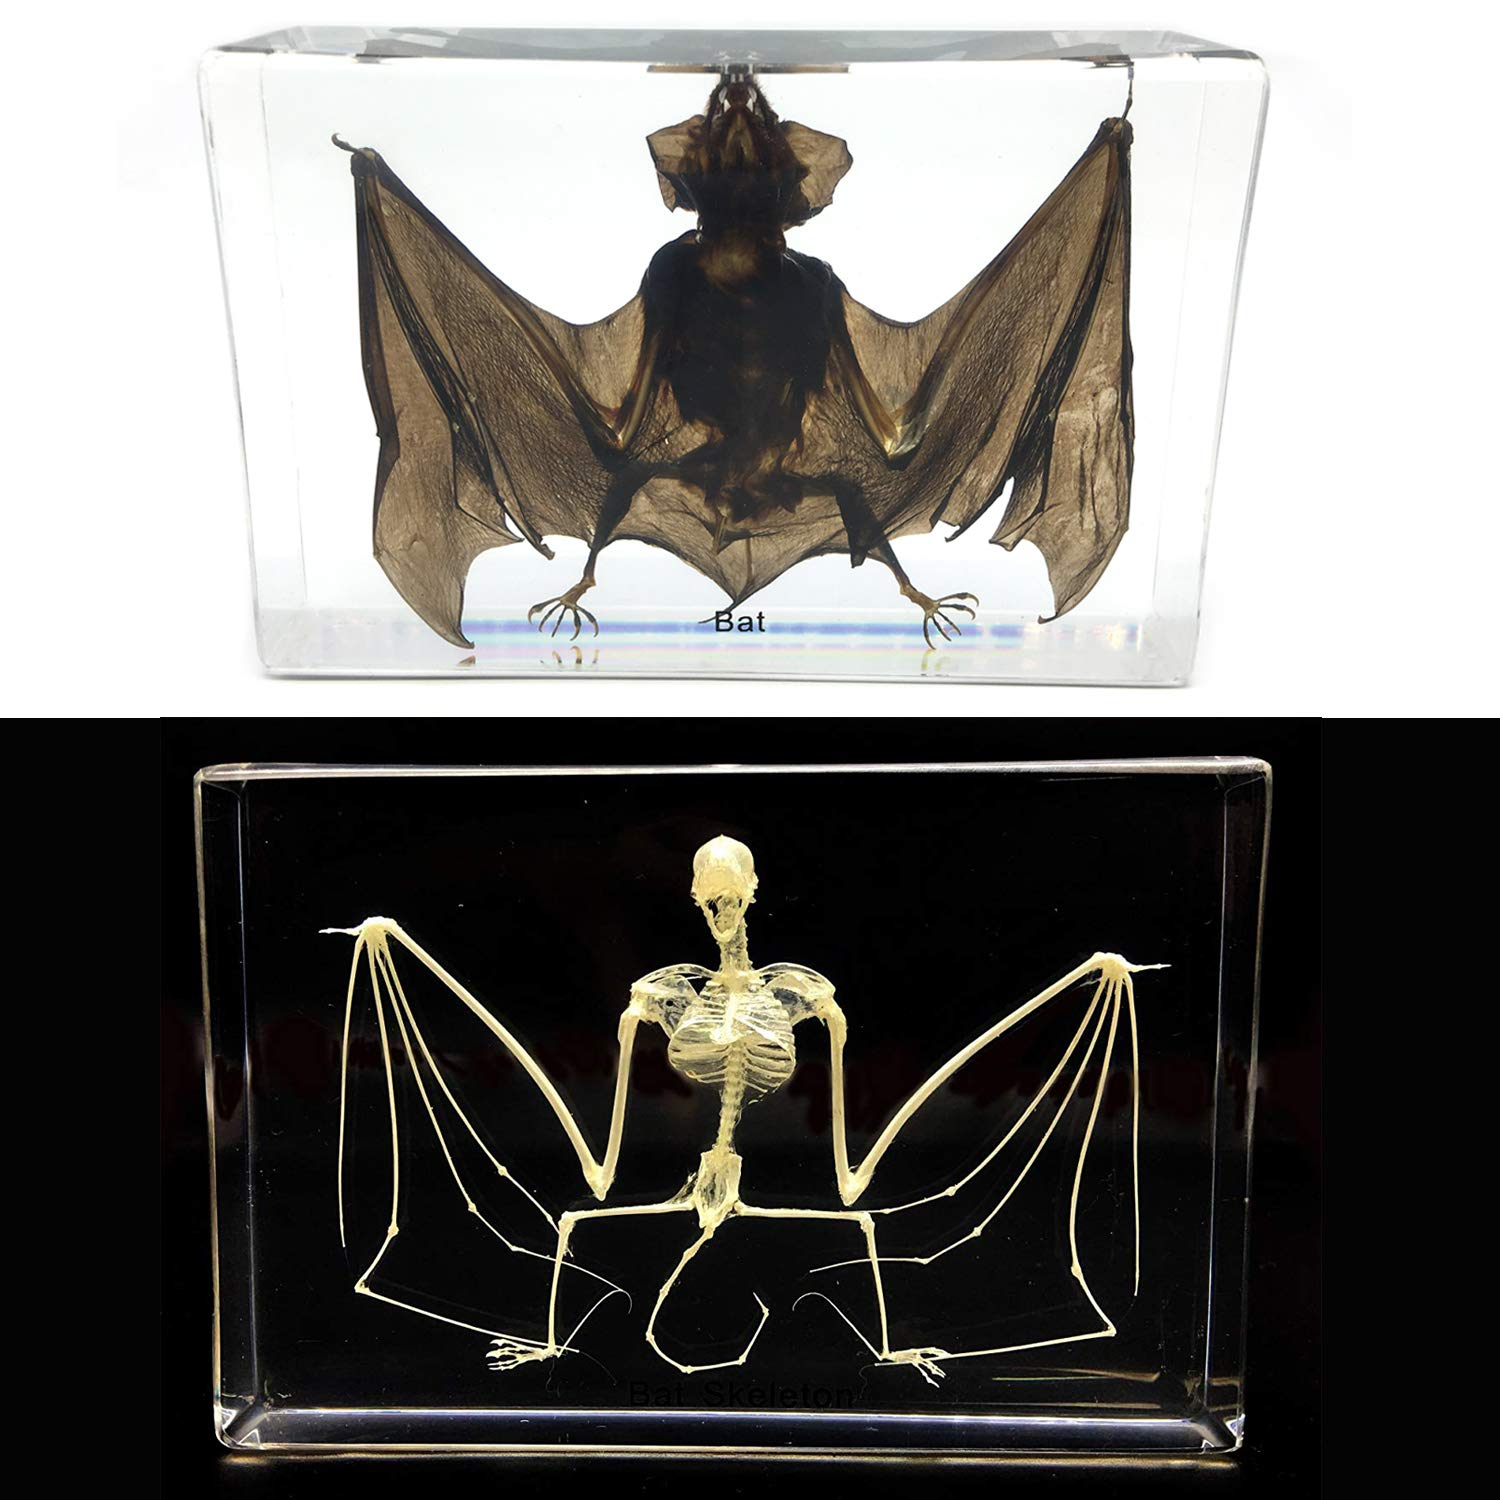 2PCS Taxidermy Real Bat and Bat Skeleton Specimens Science Classroom Specimen for Science Education(5.3''x3.5''x1.4'')